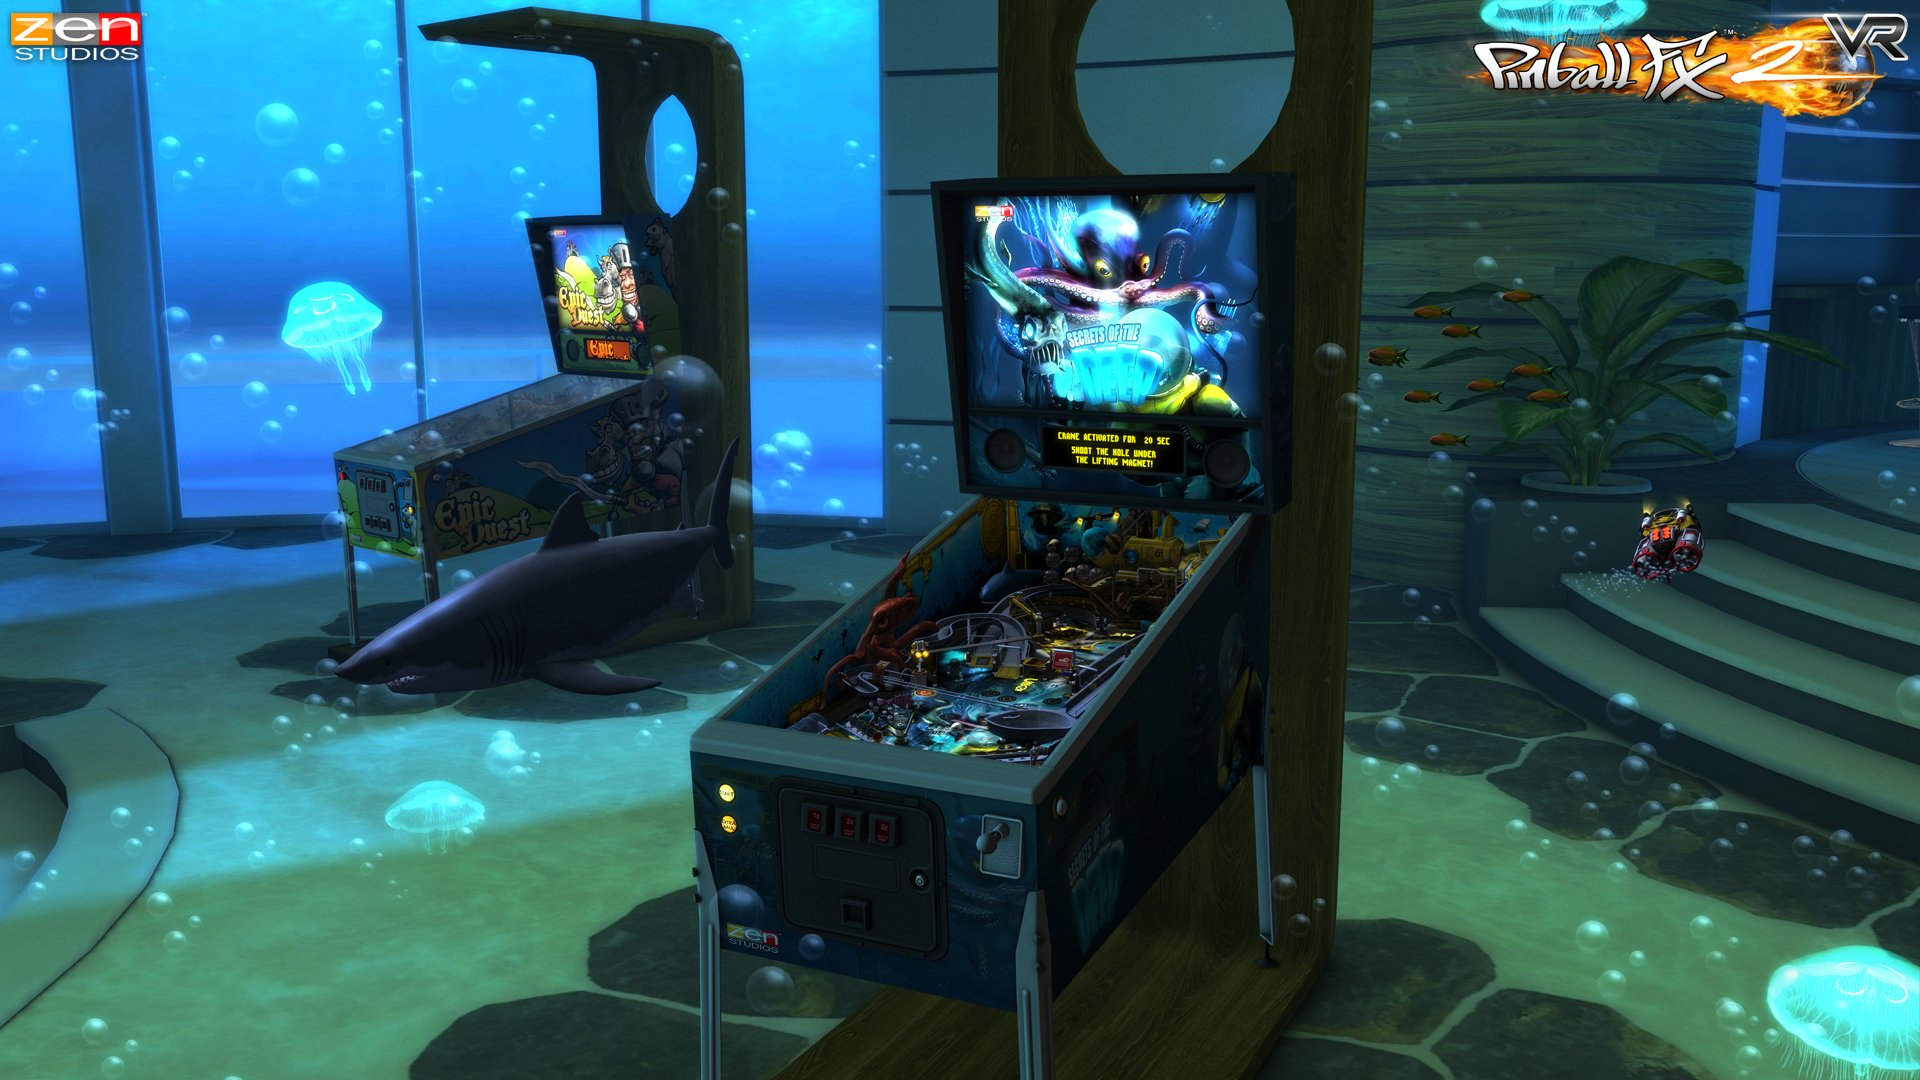 Pinball_FX2_VR_gear_vr_screenshot_Secrets_of_the_Deep